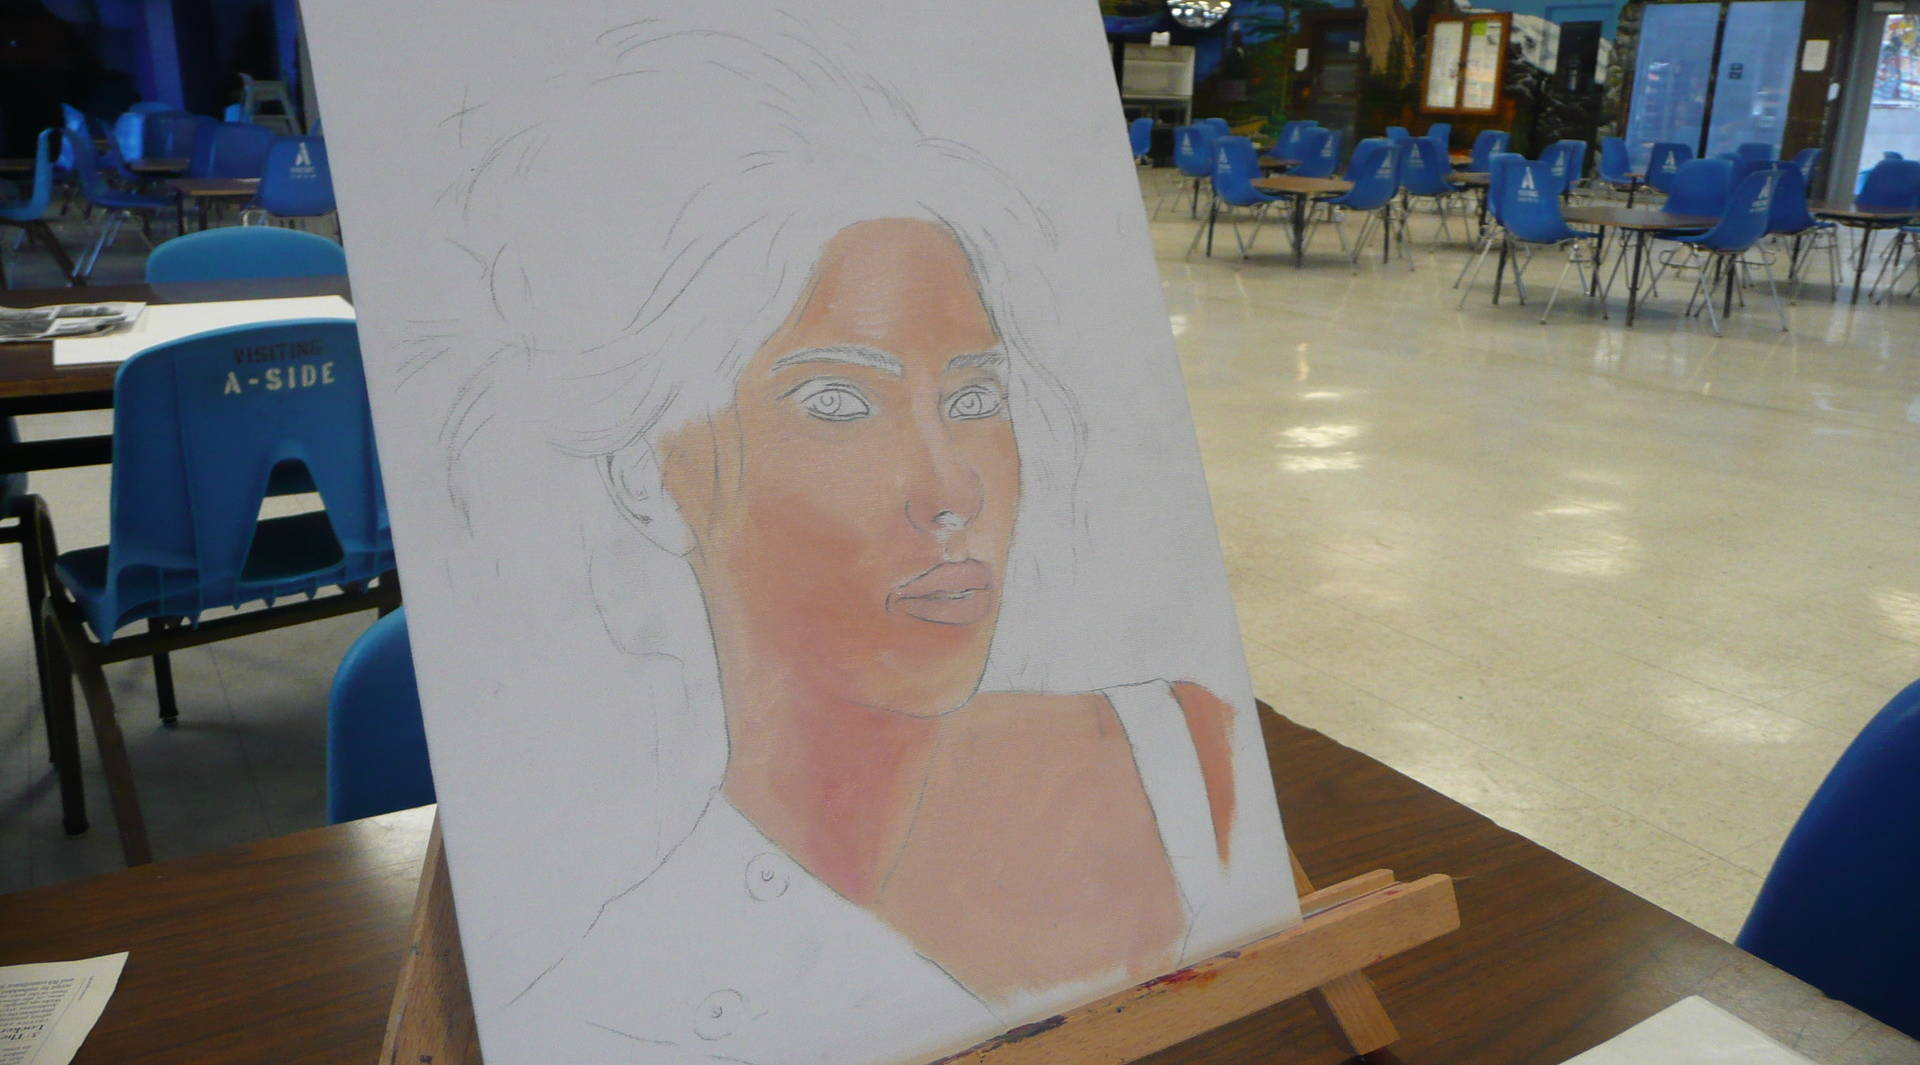 Inmate Greg Colignese's sketch of Scarlett Johansson is getting some color.